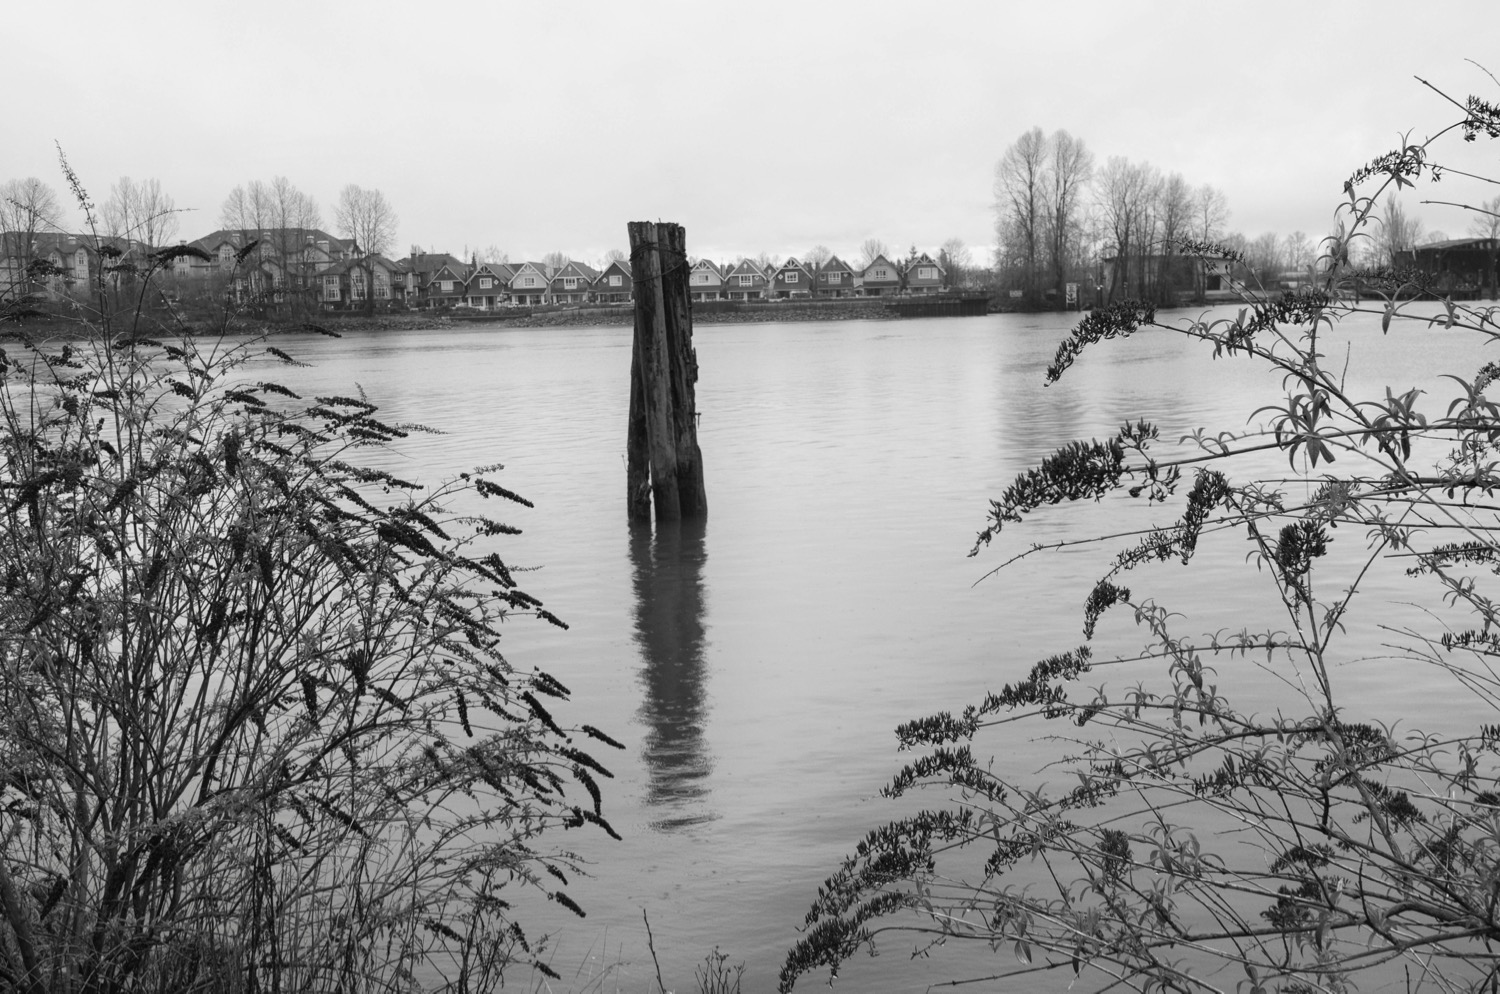 The Fraser River at New Westminster, BC  Click image to enlarge.